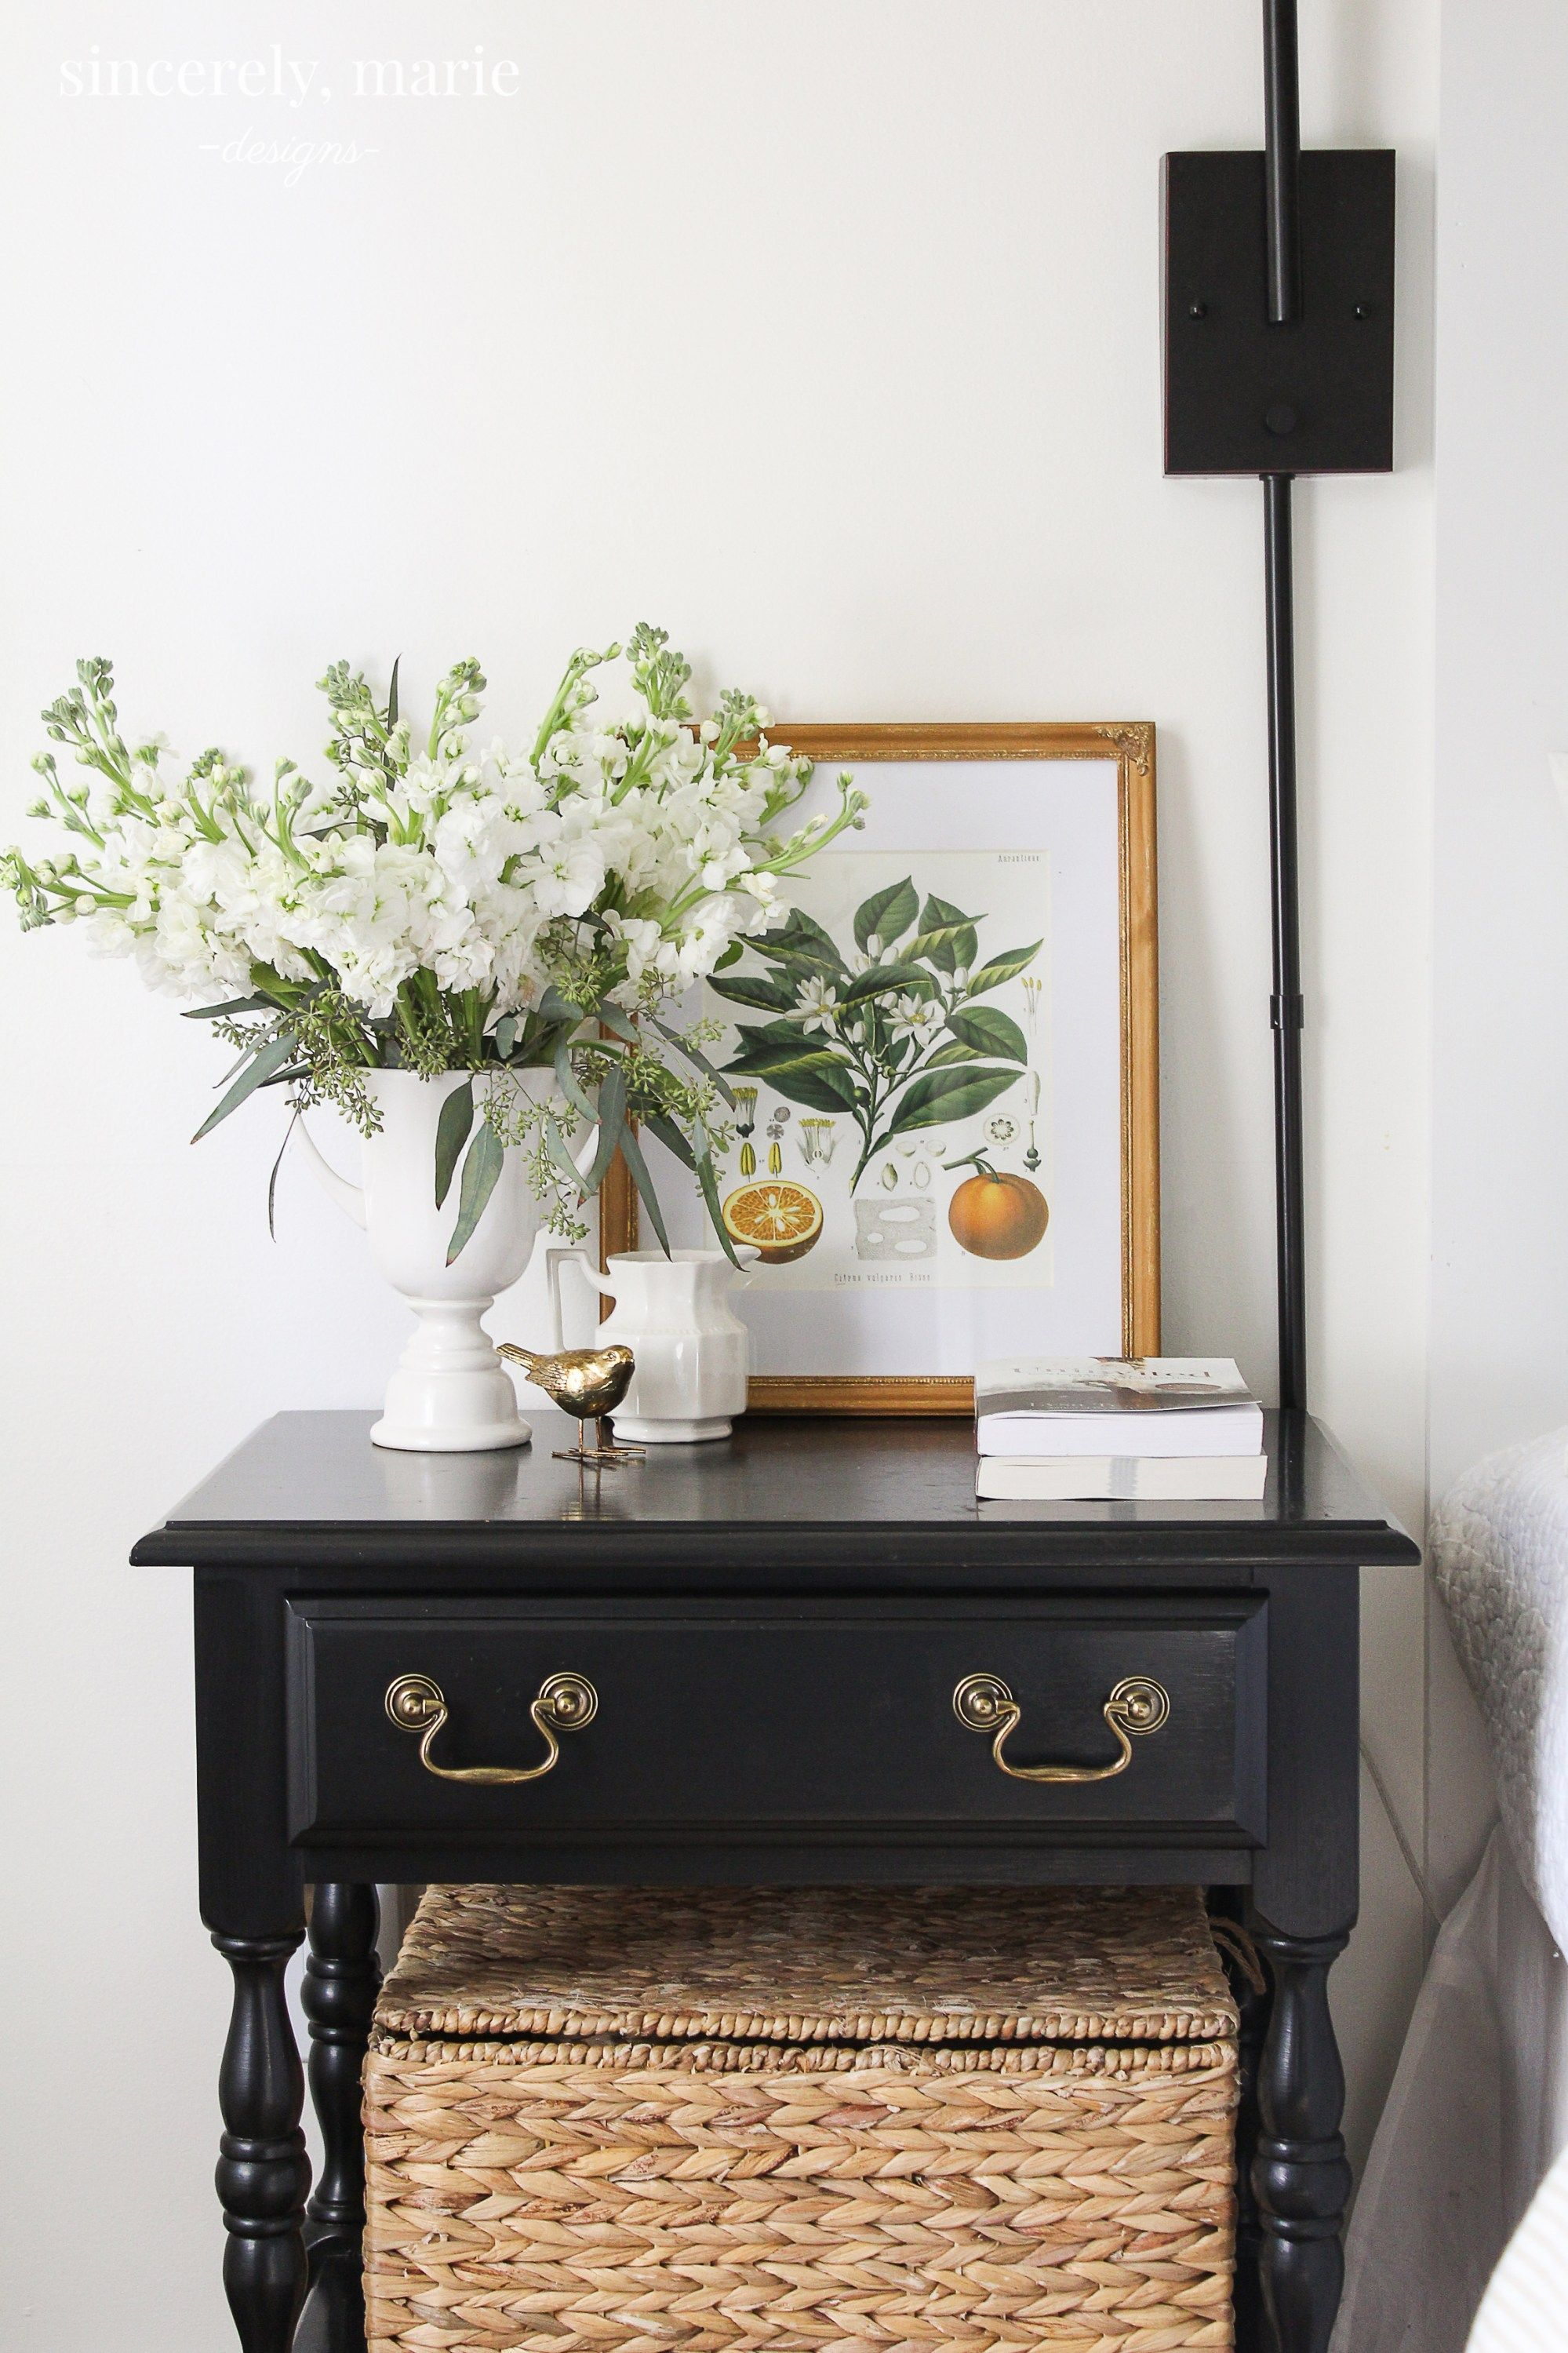 Merveilleux Our Vintage Nightstands U0026 My Favorite Furniture Refinishing Trick    Sincerely, Marie Designs